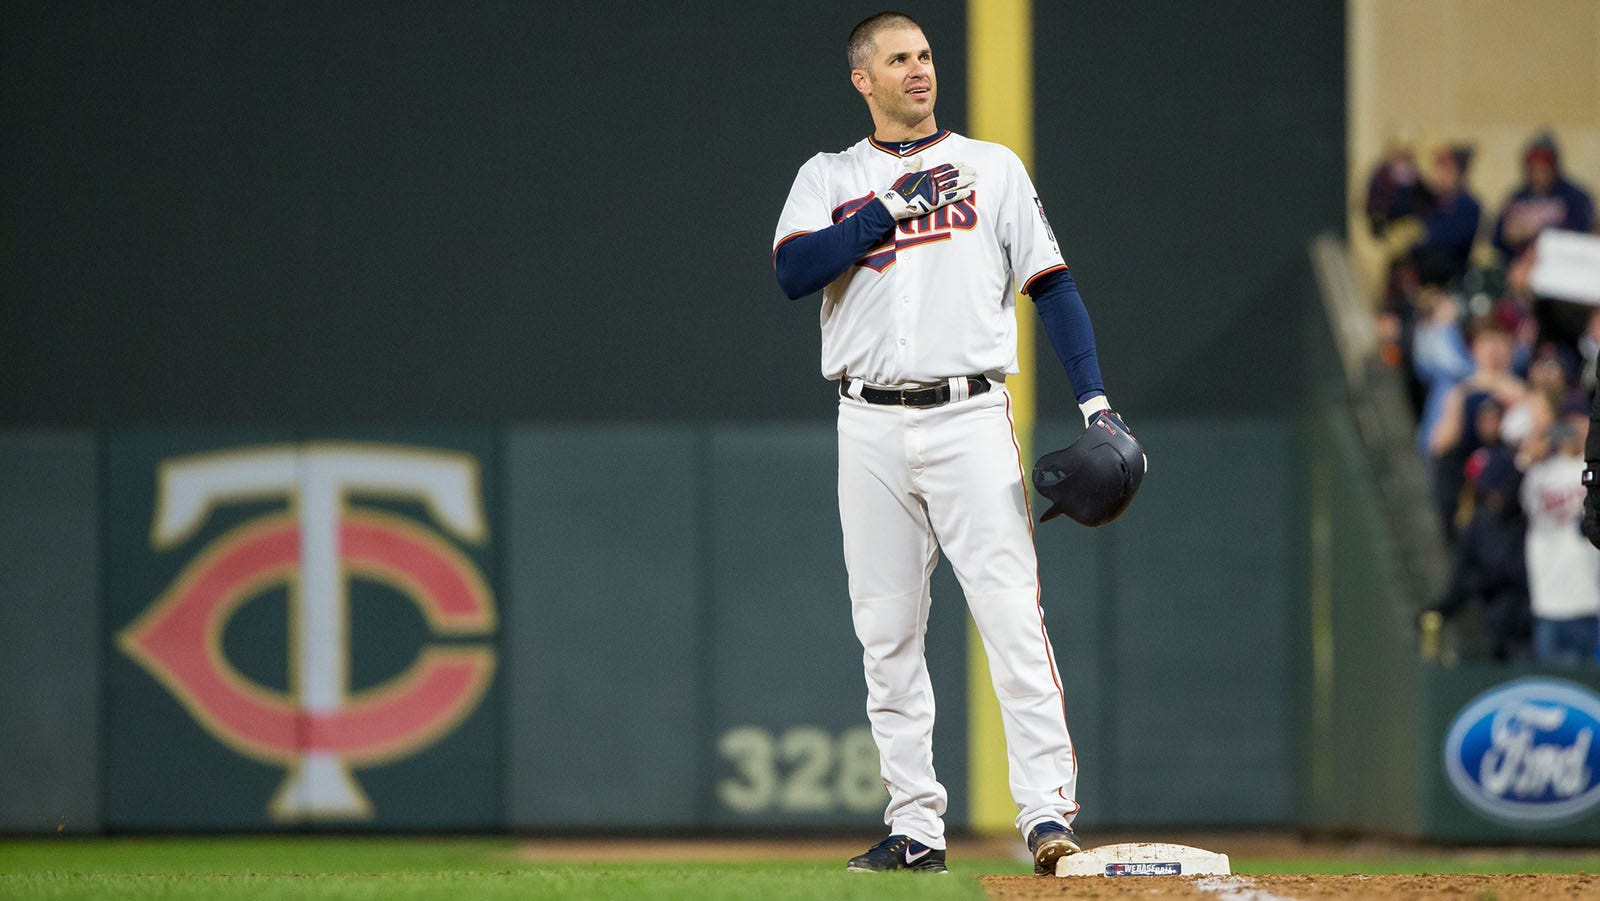 StaTuesday: Twins' Mauer joins short list of players with 2,000 hits